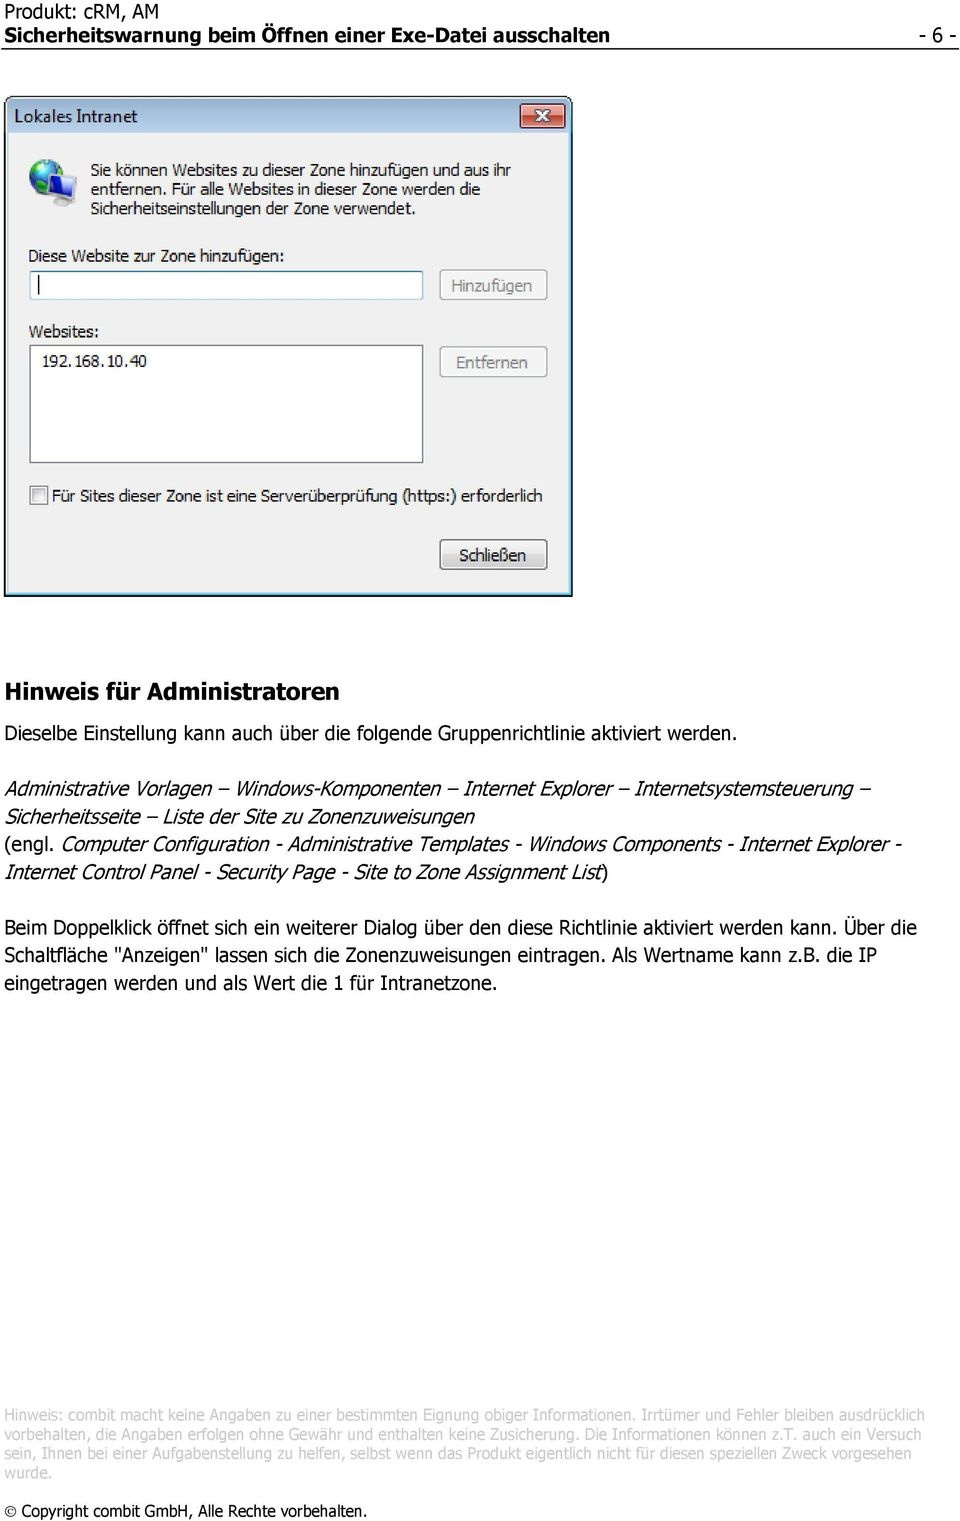 Computer Configuration - Administrative Templates - Windows Components - Internet Explorer - Internet Control Panel - Security Page - Site to Zone Assignment List) Beim Doppelklick öffnet sich ein